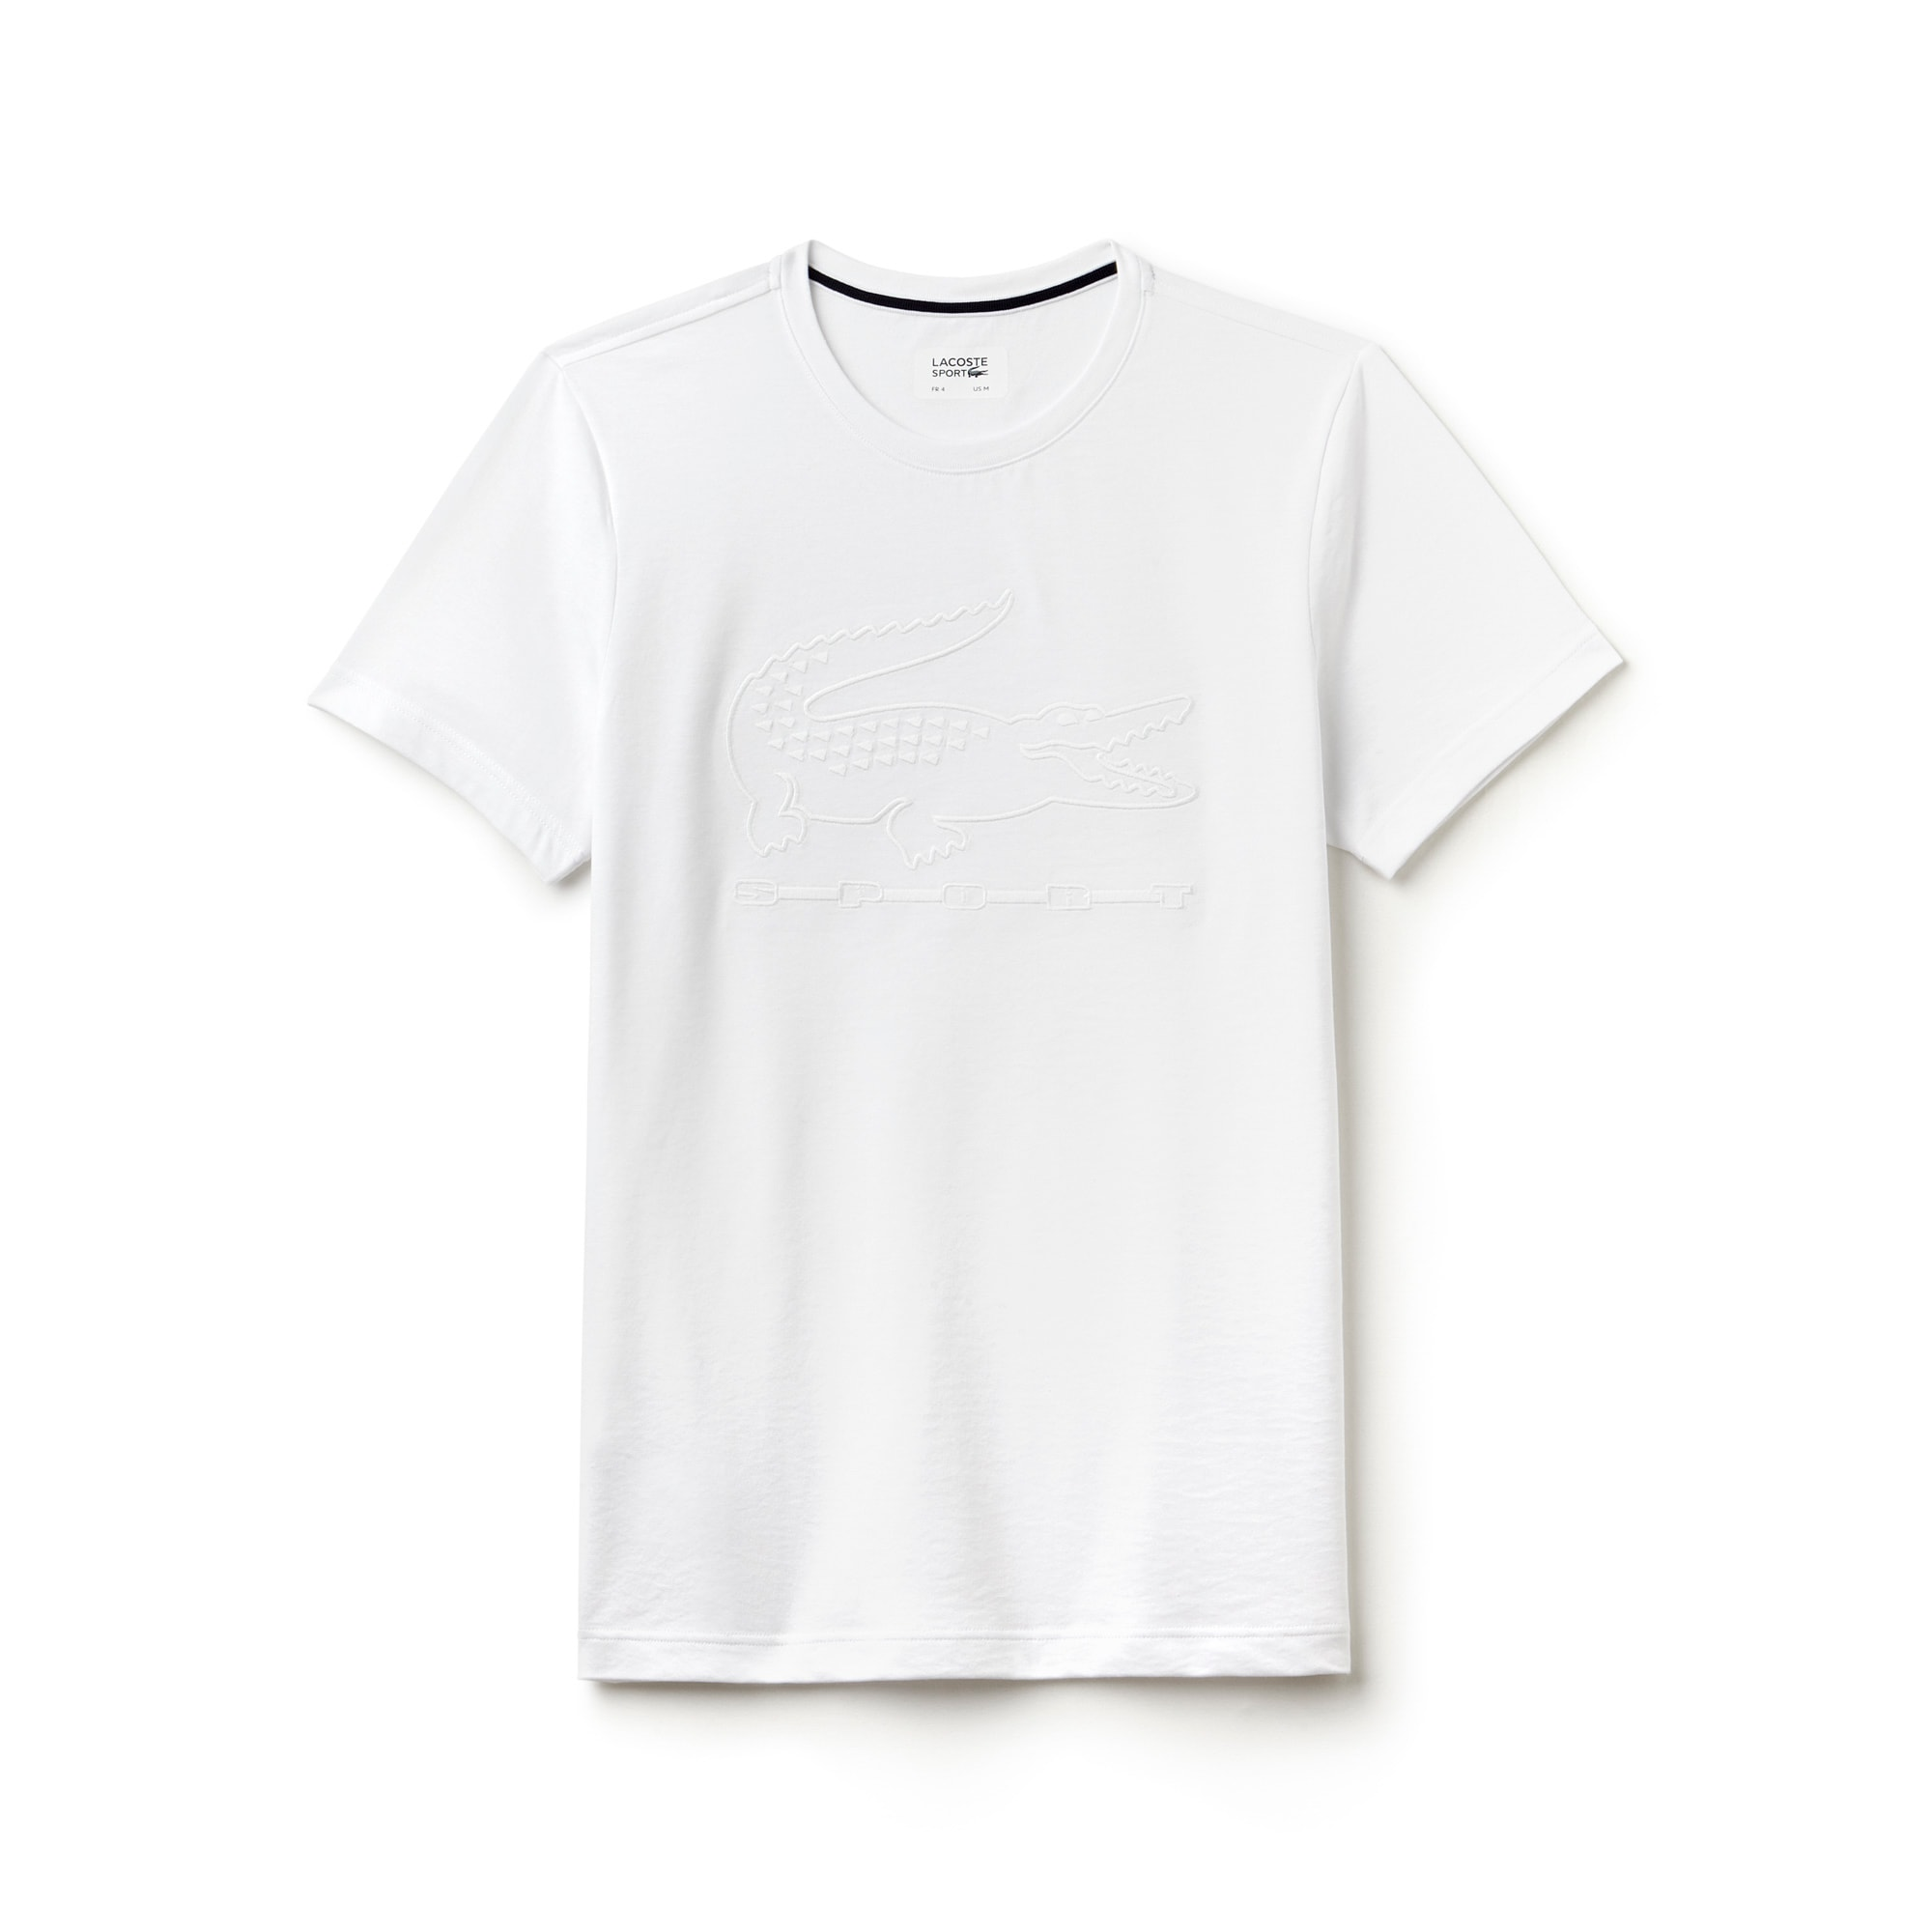 T shirts men 39 s sport lacoste sport for Simply for sports brand t shirts